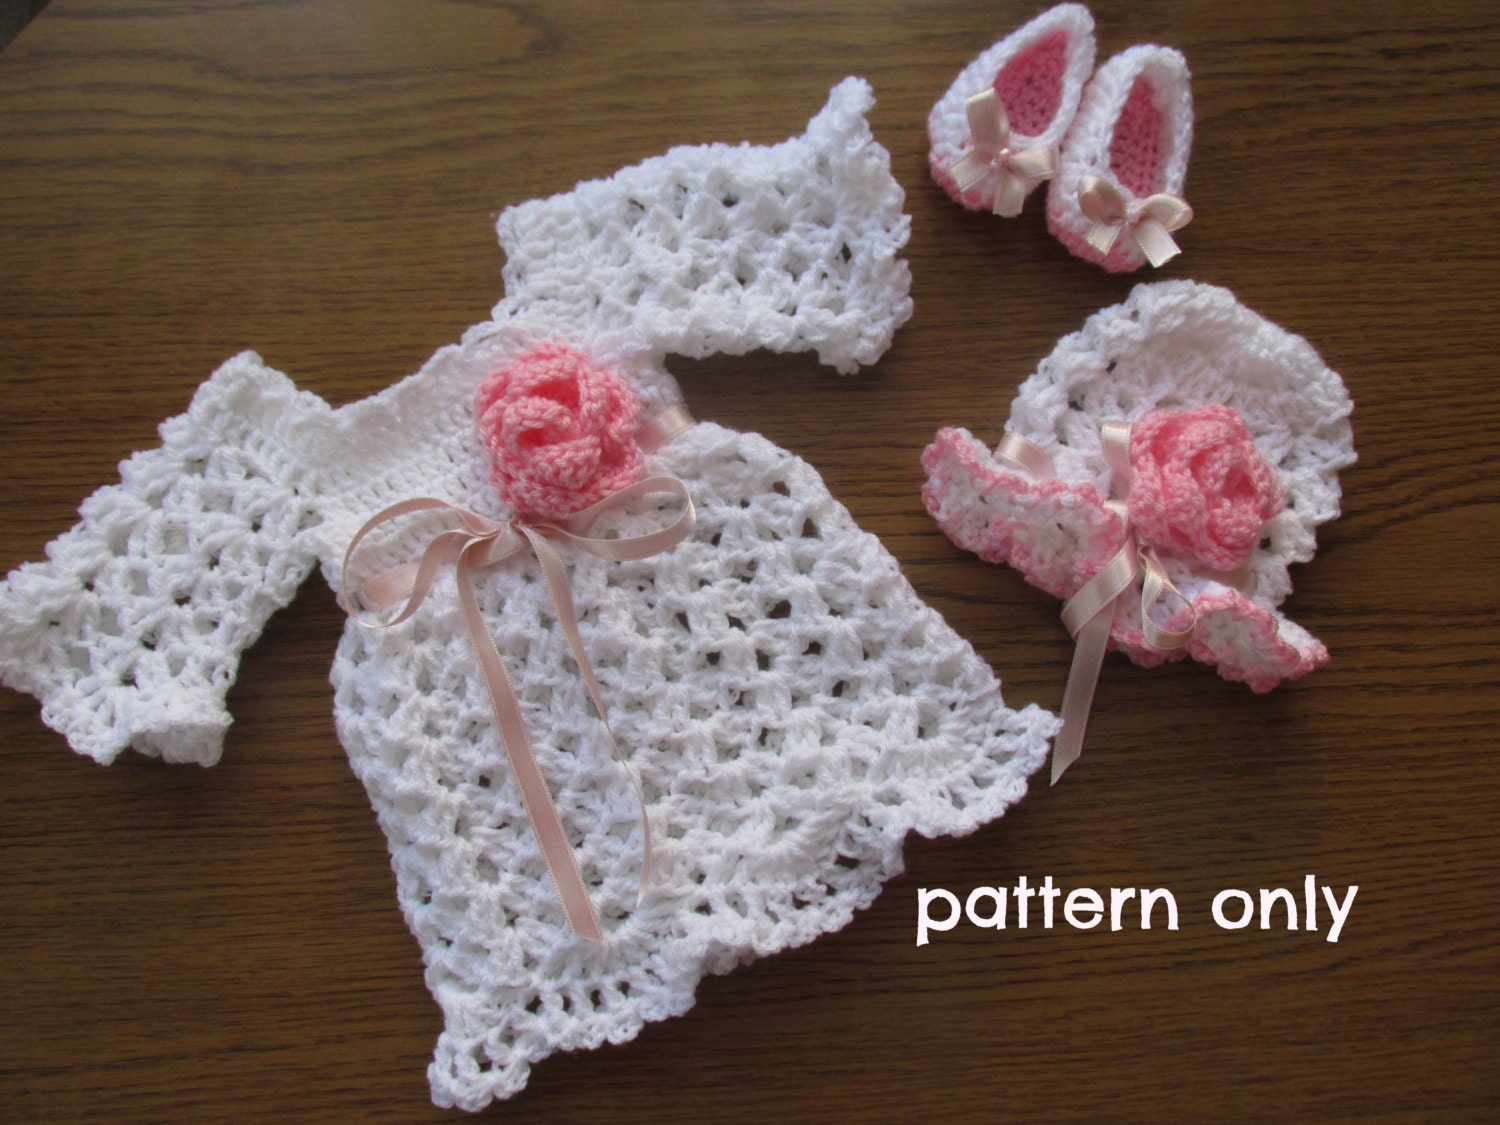 Crochet Baby Outfit Patterns : Crochet pattern 3patterns in one Baby Dress Crochet Baby Dress